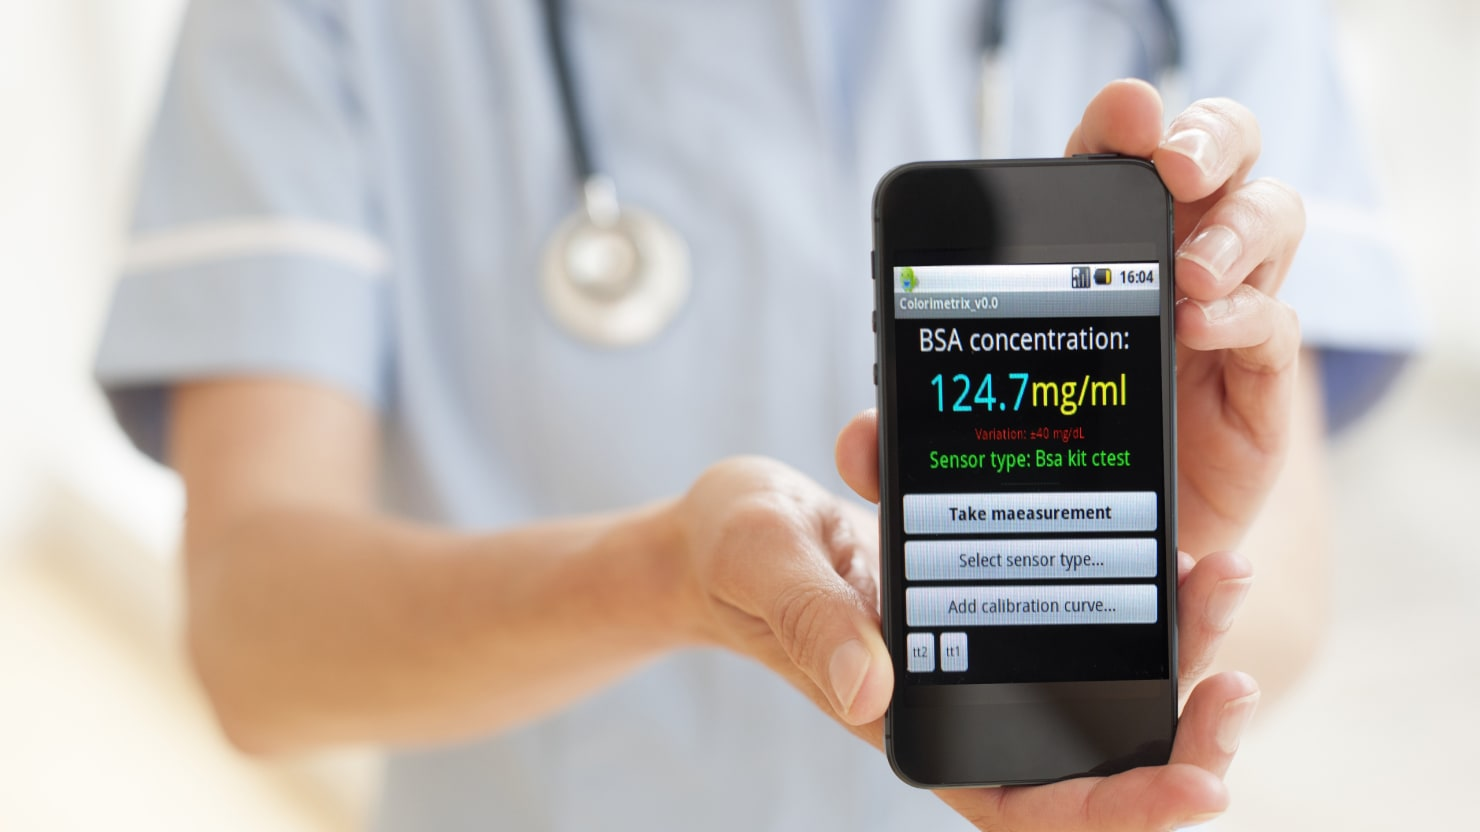 New Camera-Centric Smartphone App Puts Health Care in Your Pocket